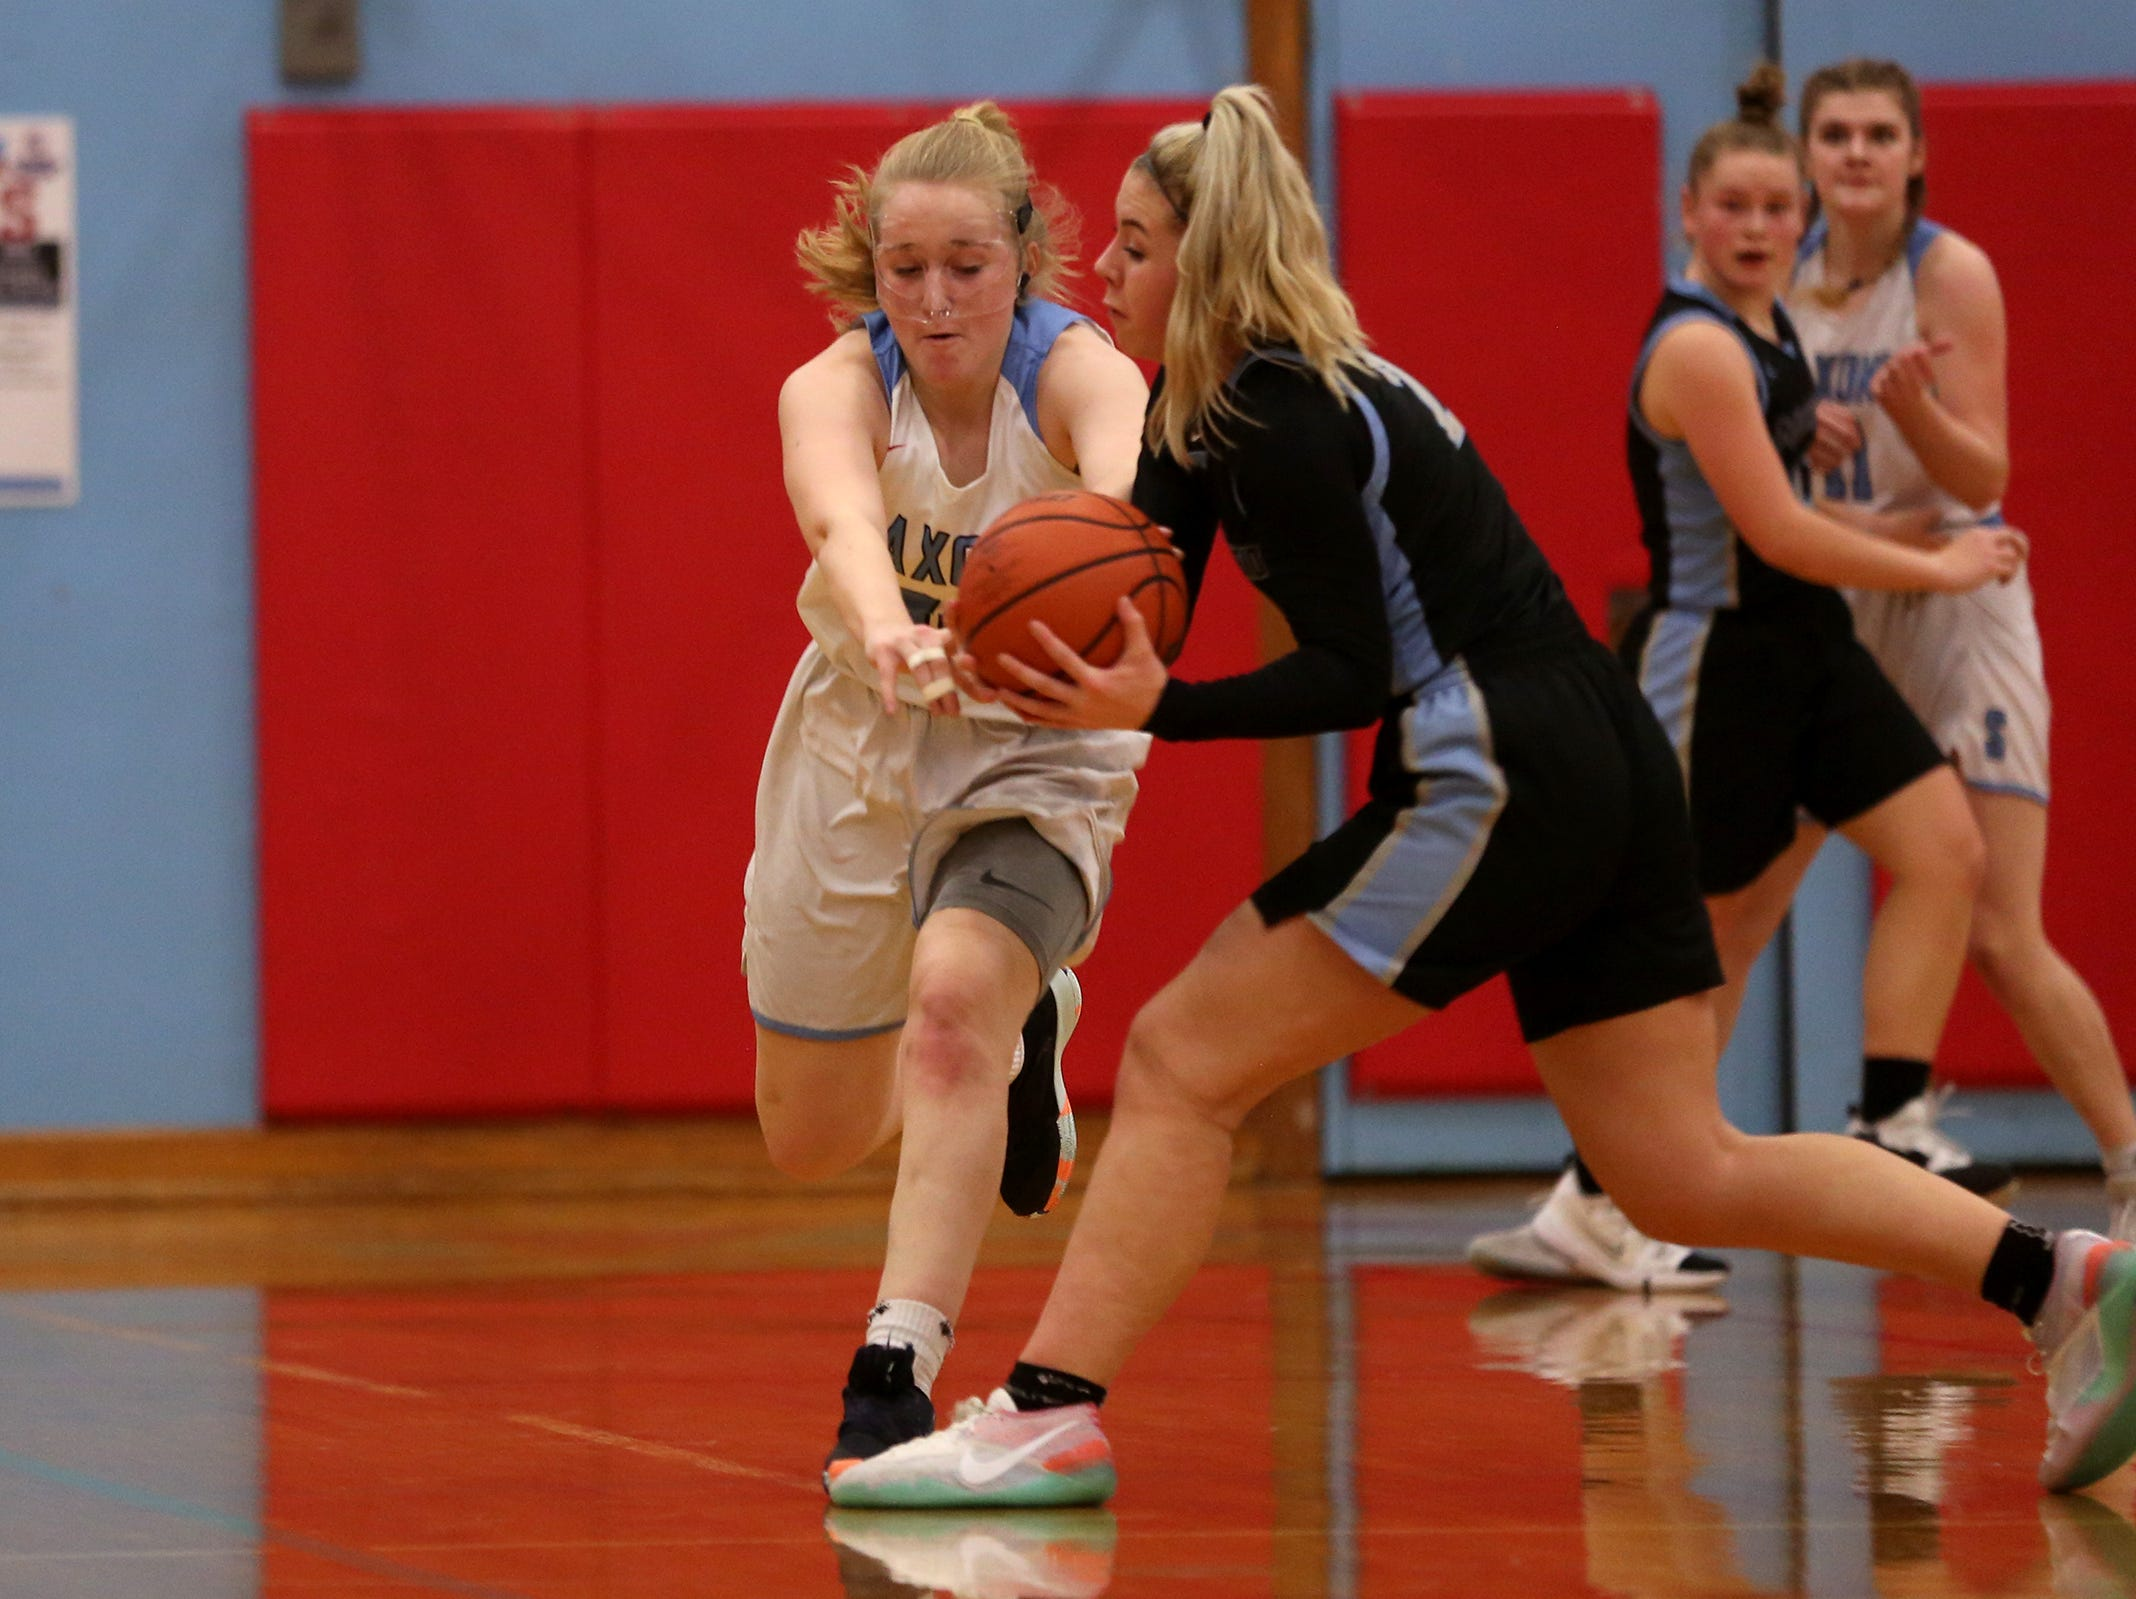 South Salem's Gretchen Olsen (30) attempts a steal during the South Salem vs. Mountainside girls basketball OSAA playoff game in Salem on Thursday, Feb. 28, 2019.